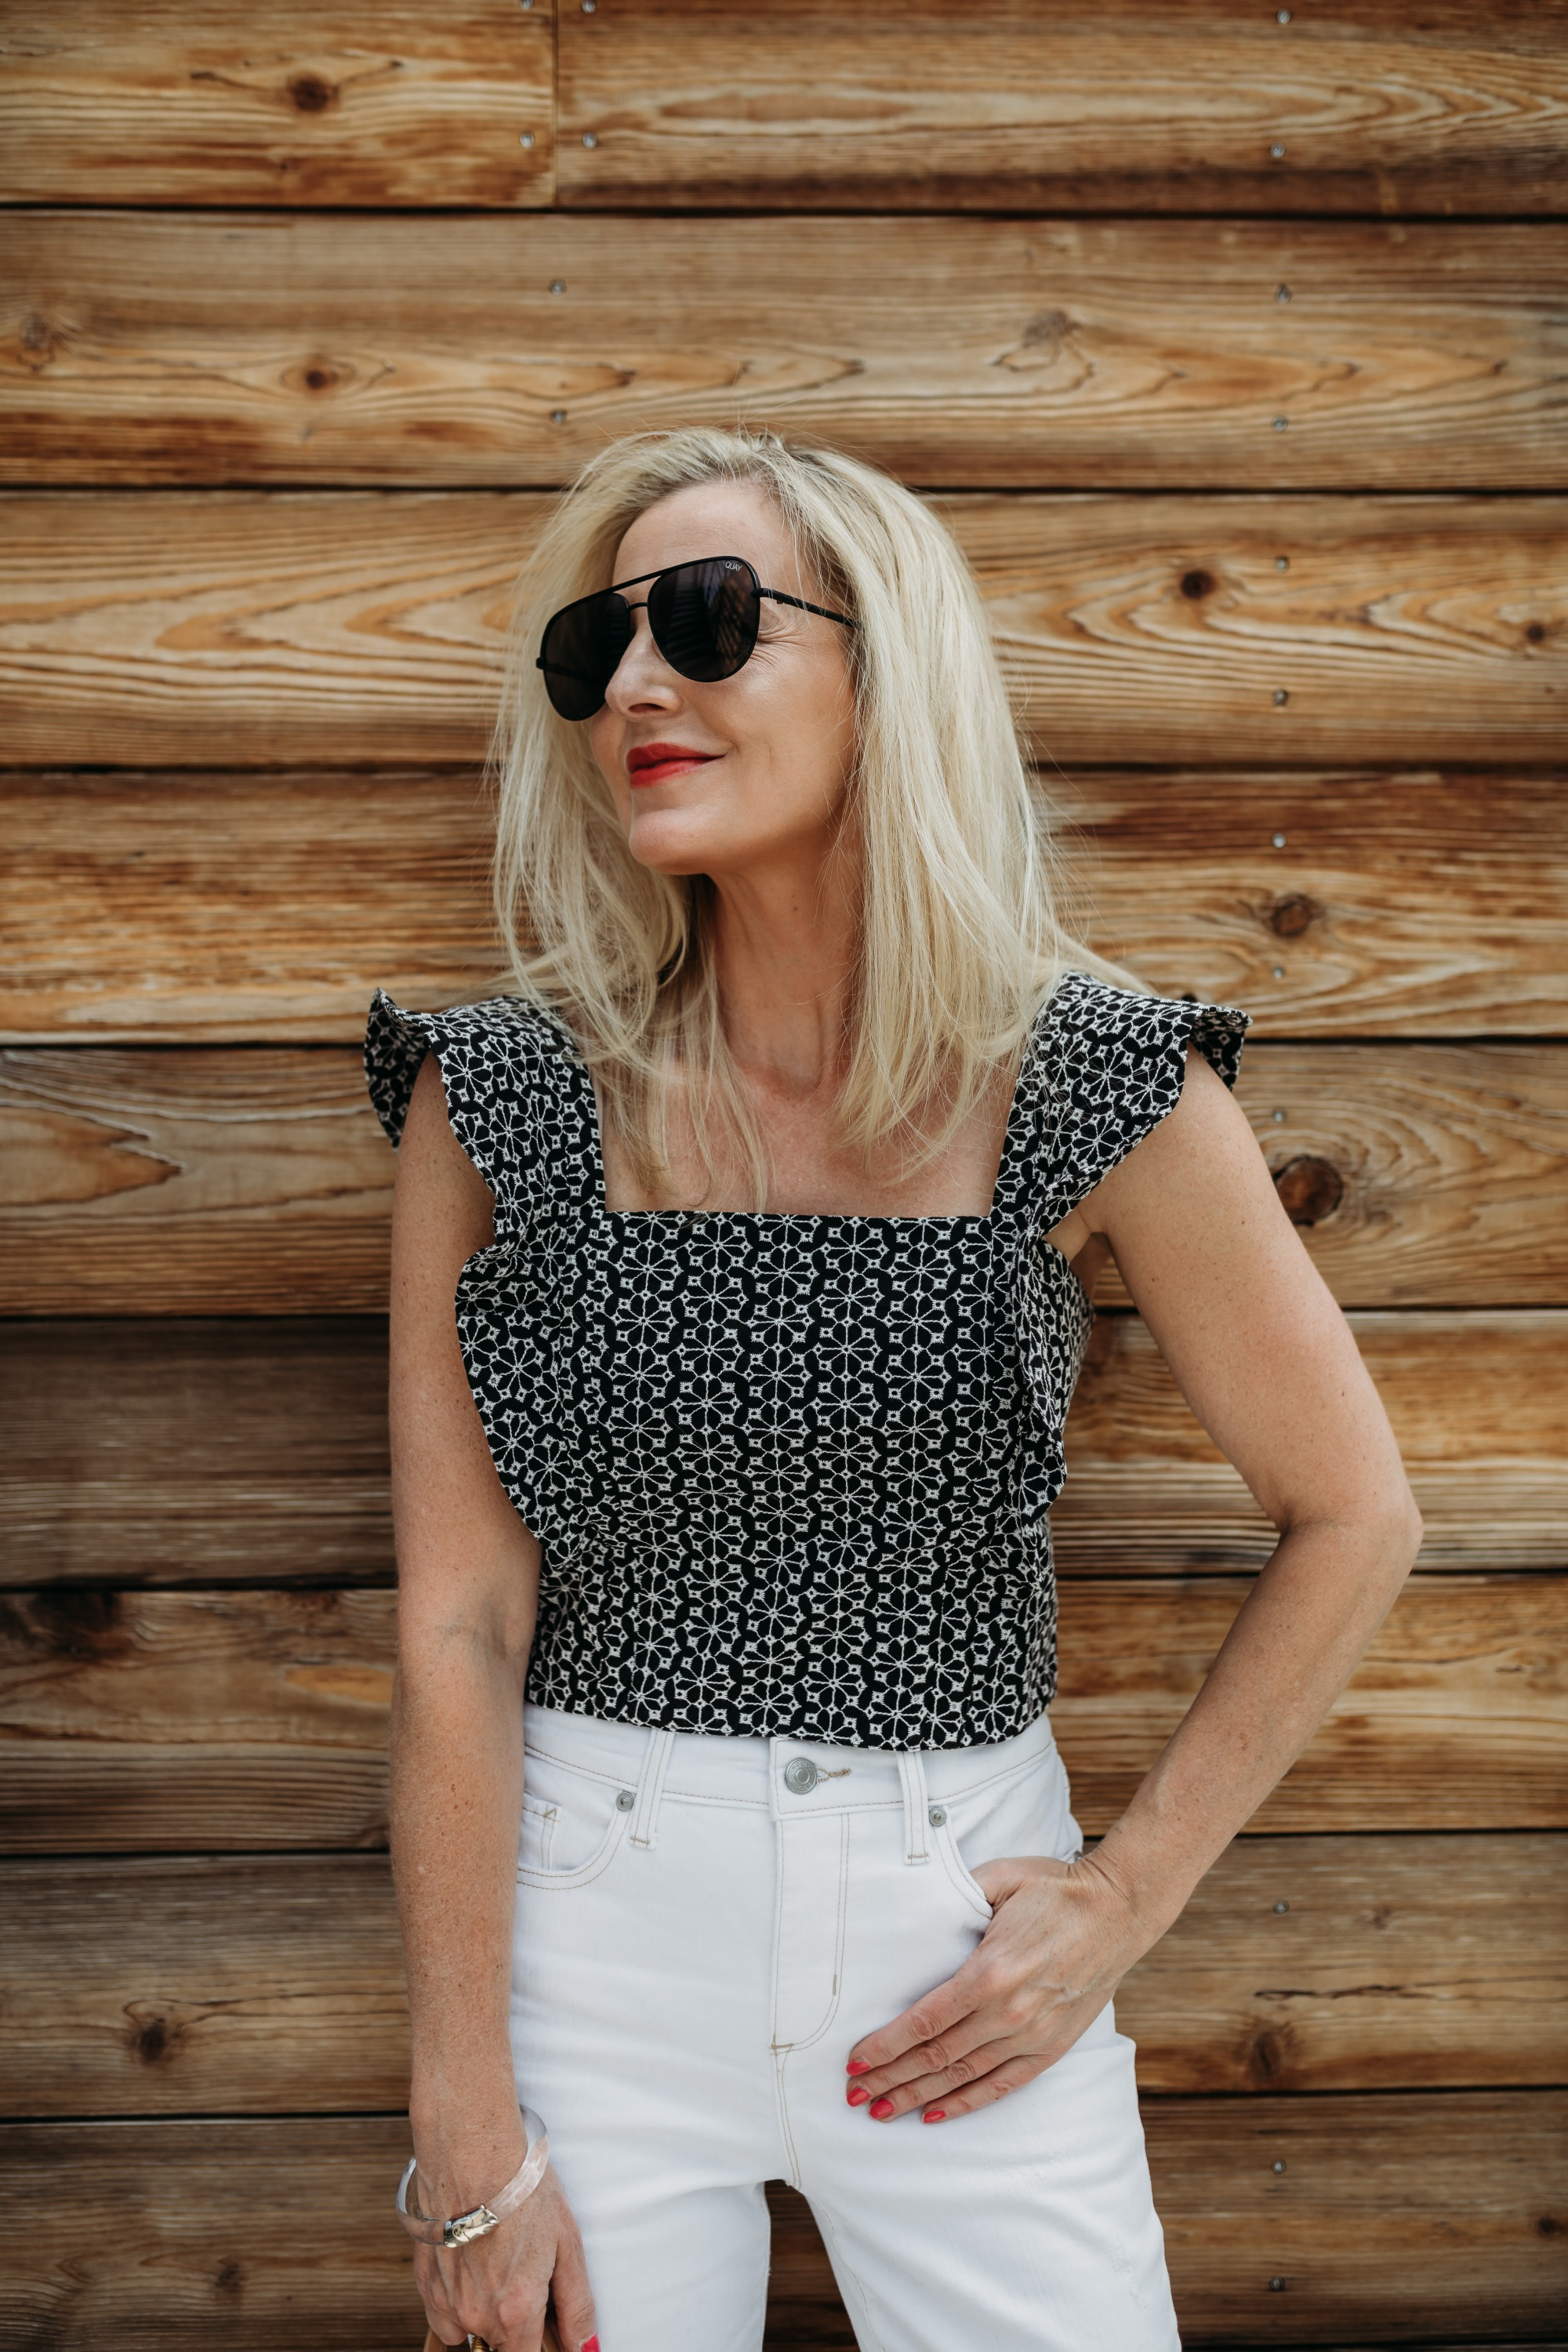 fashion blogger over 40 showing how to style a crop top over age 40 in age appropriate outfit